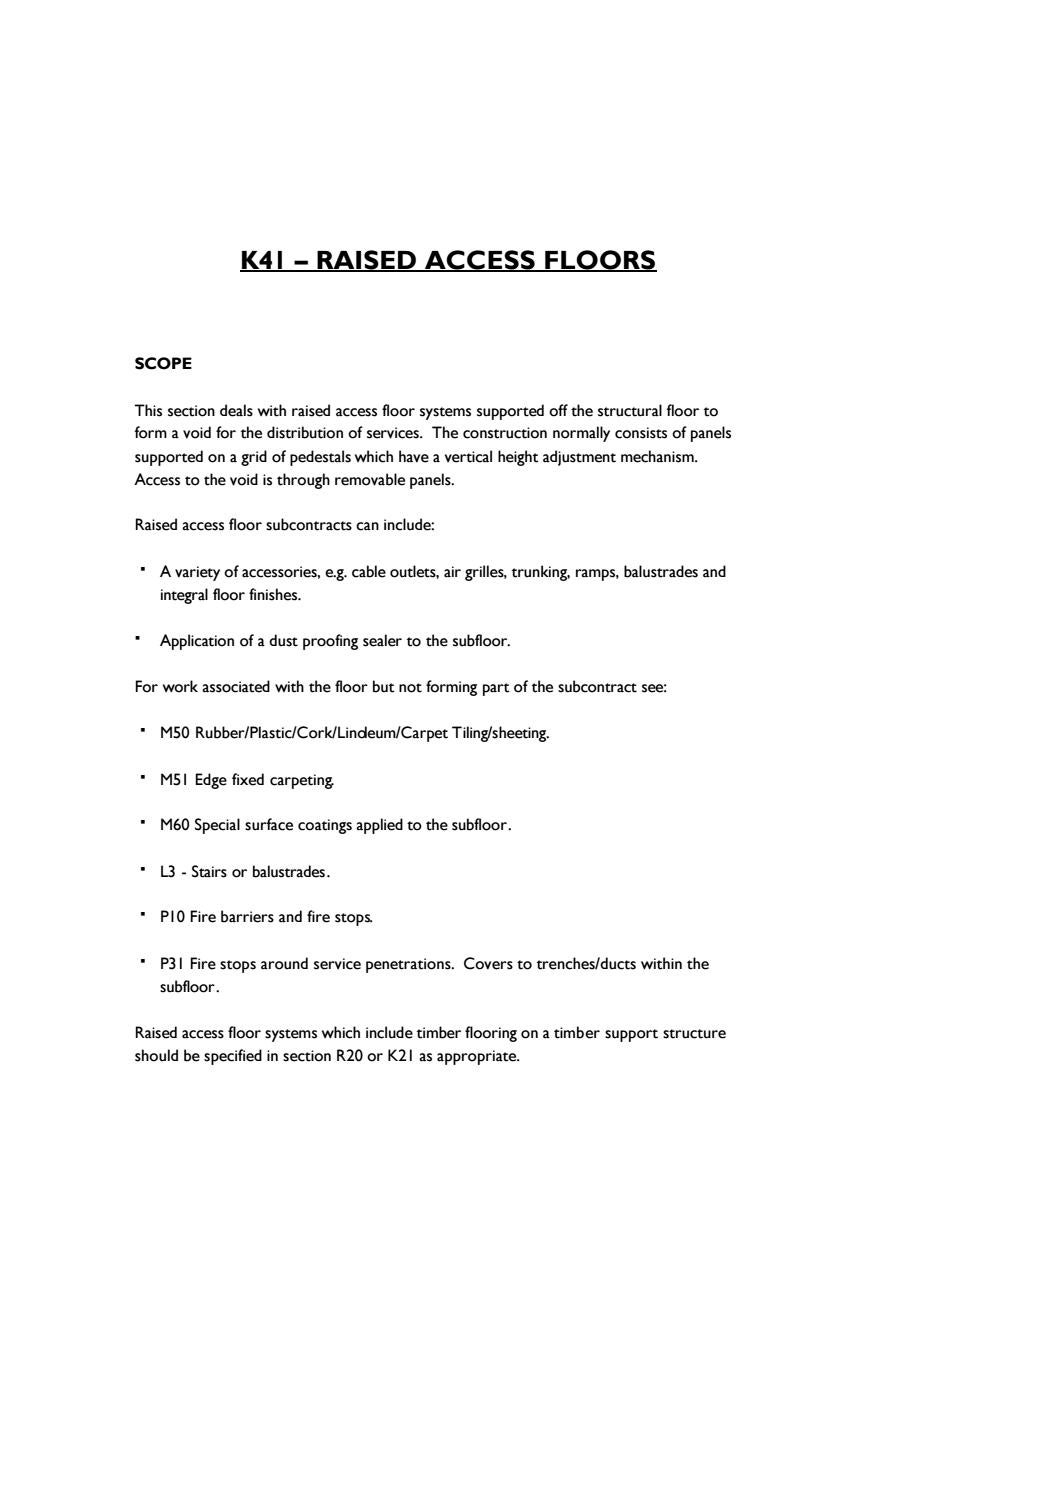 Access Flooring K41 Explained By Access Flooring